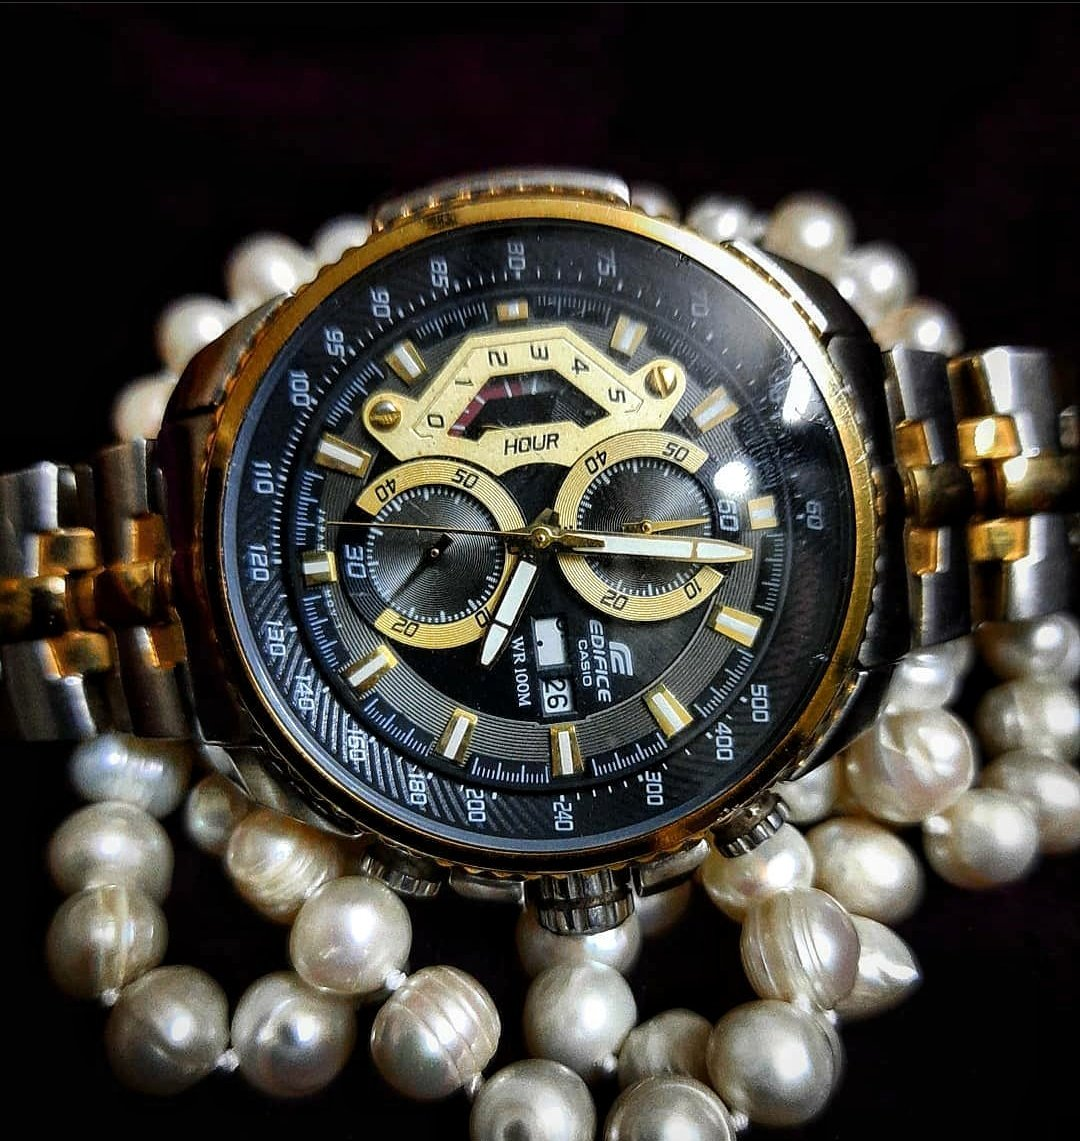 Casio watch and pearls